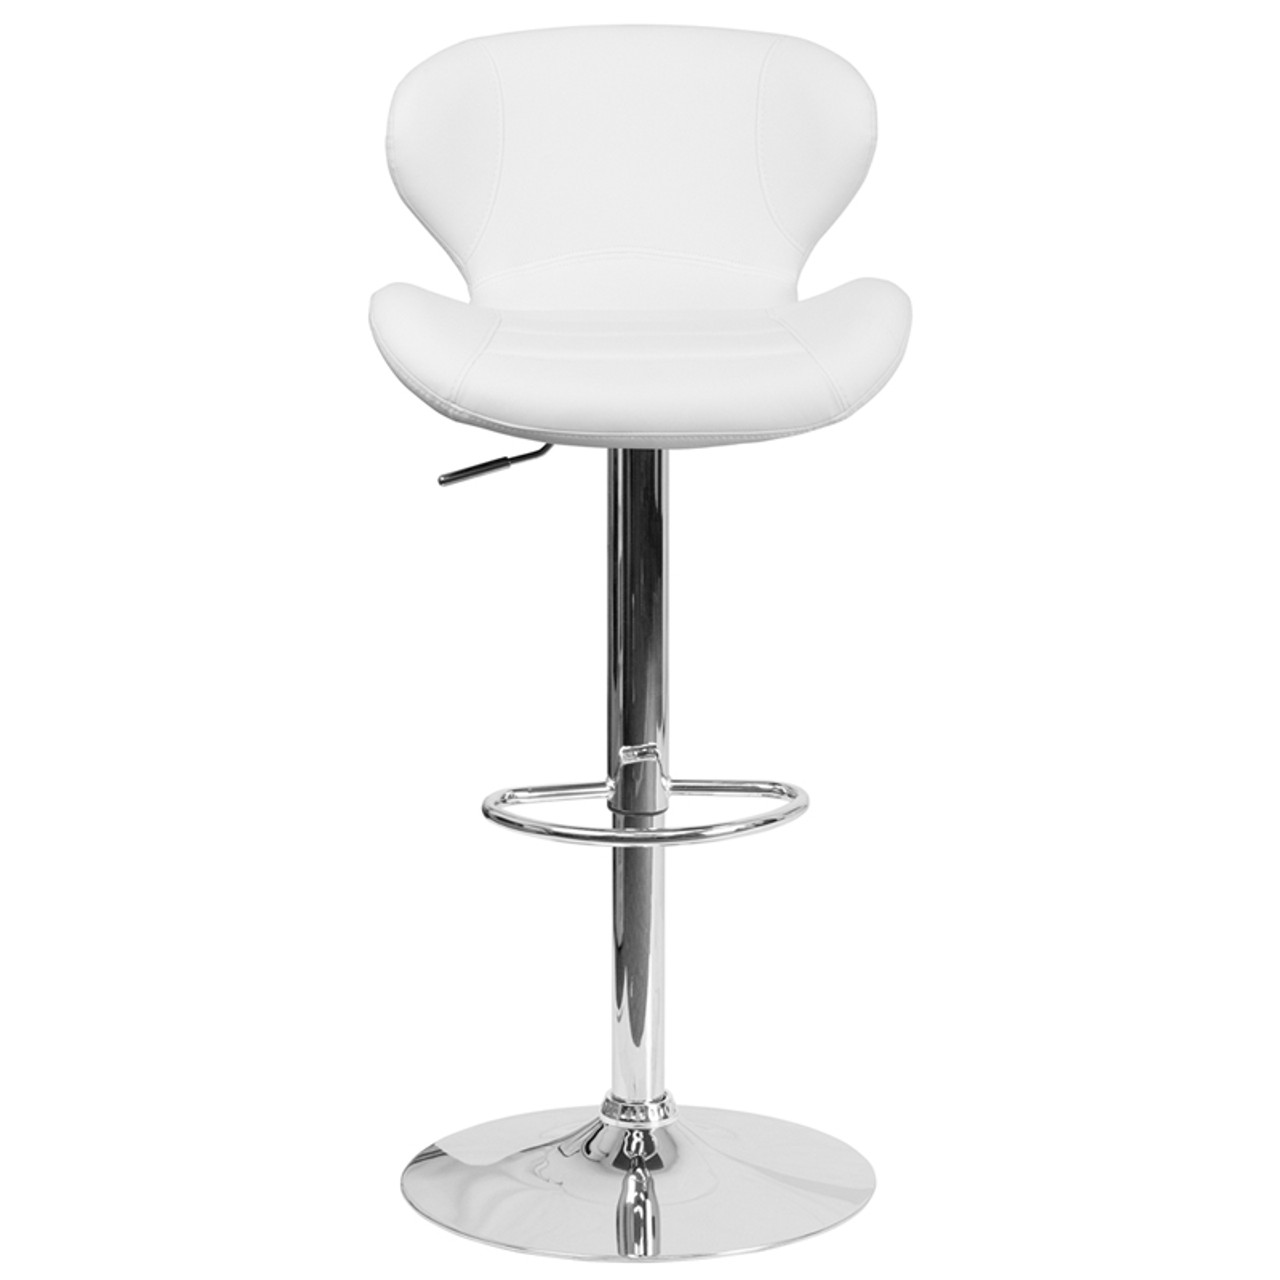 Contemporary White Vinyl Adjustable Height Rounded Barstool with Chrome Base